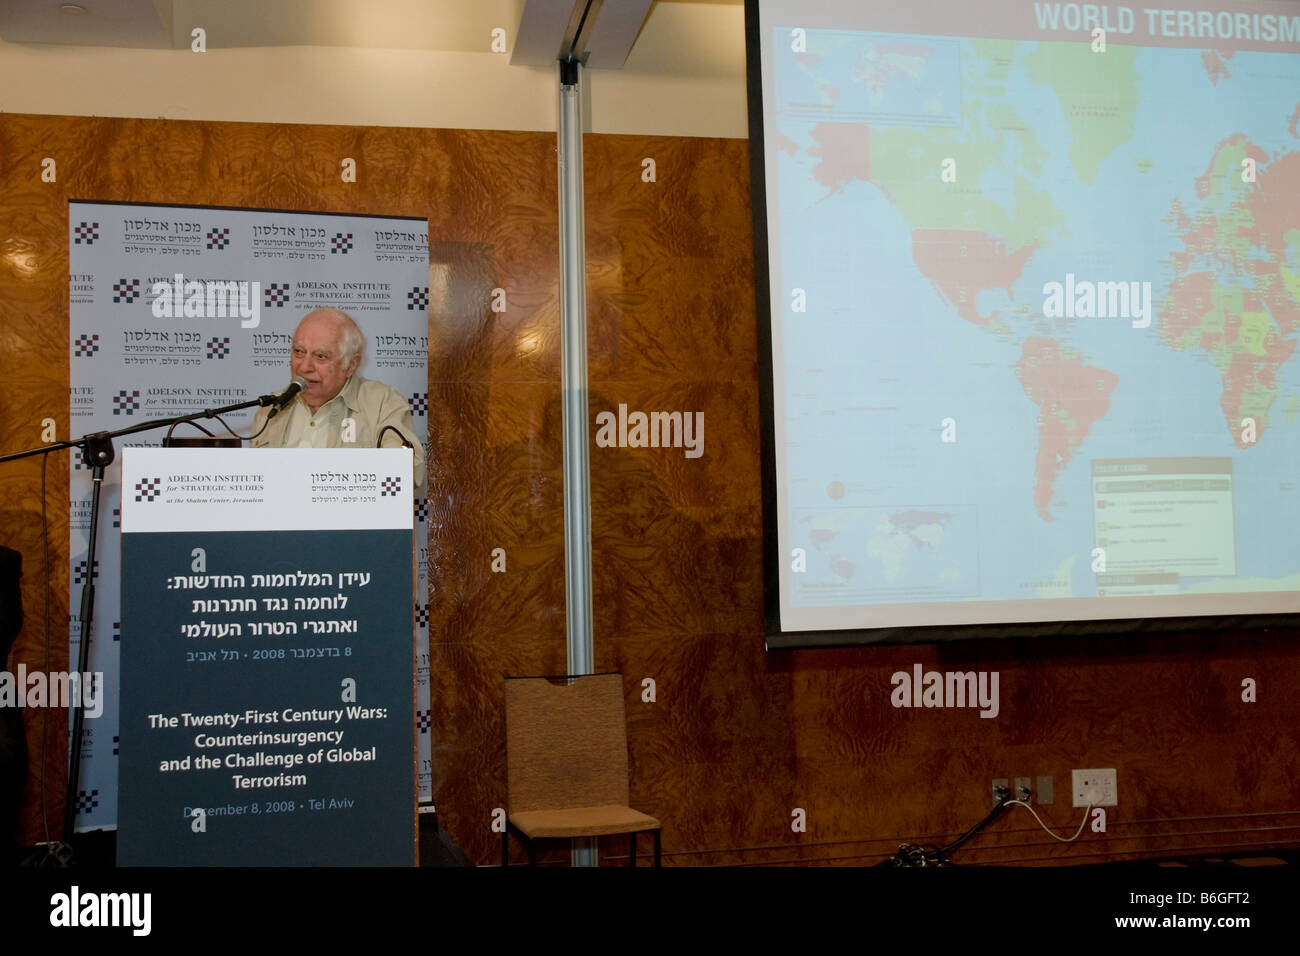 Prof. Bernard Lewis at the Adelson Institute's Dec. 2008 conference. A map of world Terrorism can be seen to the Stock Photo